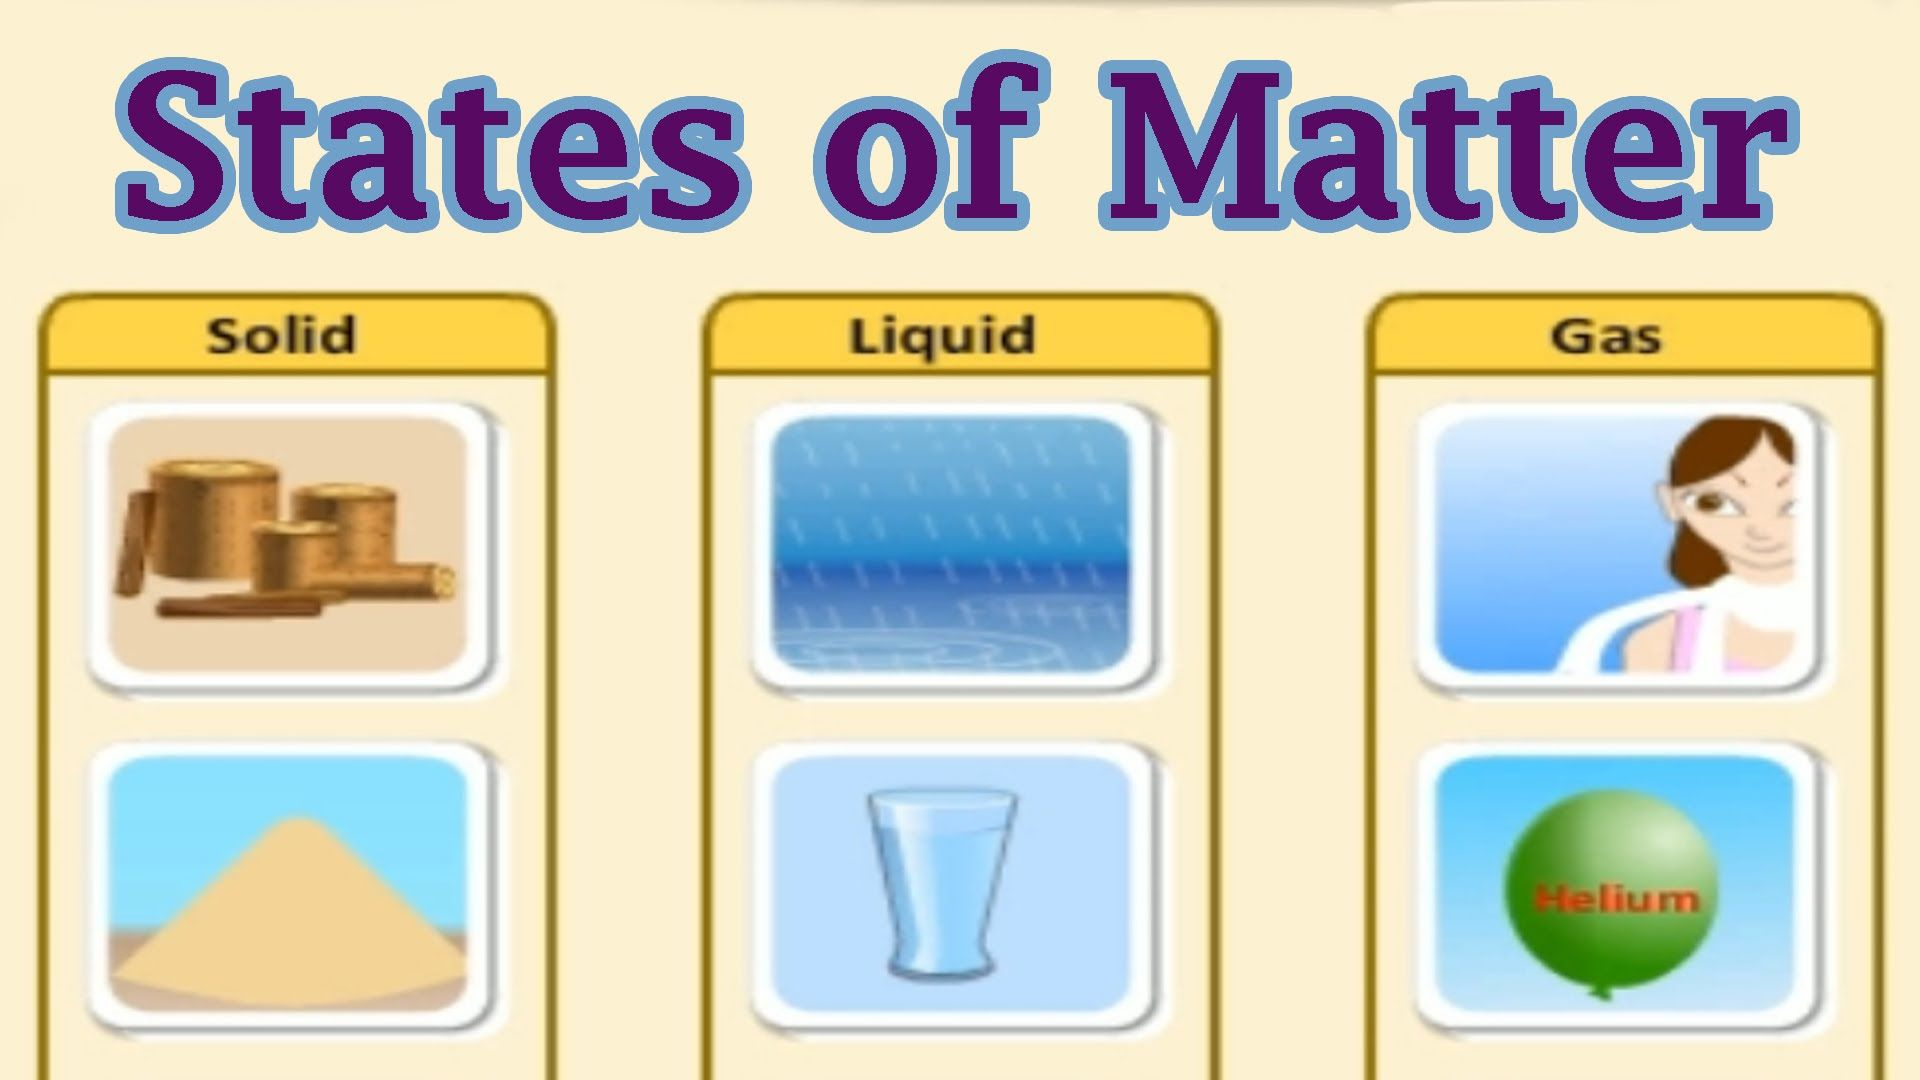 States Of Matter Interactive Game For Kids This Youtube Video From The Site Creators Highlights